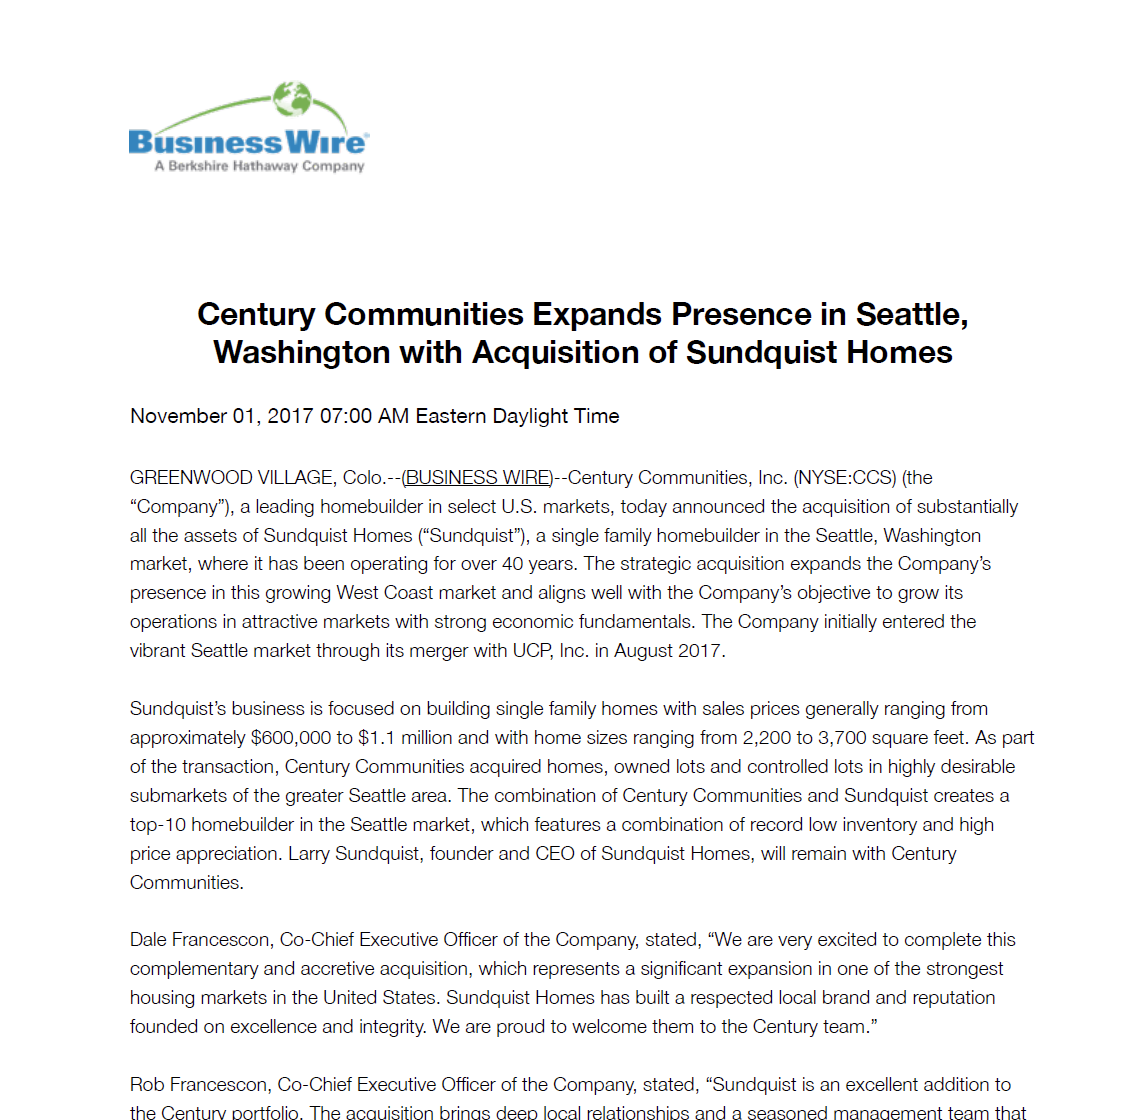 Century Expands in Seattle with Sundquist Homes